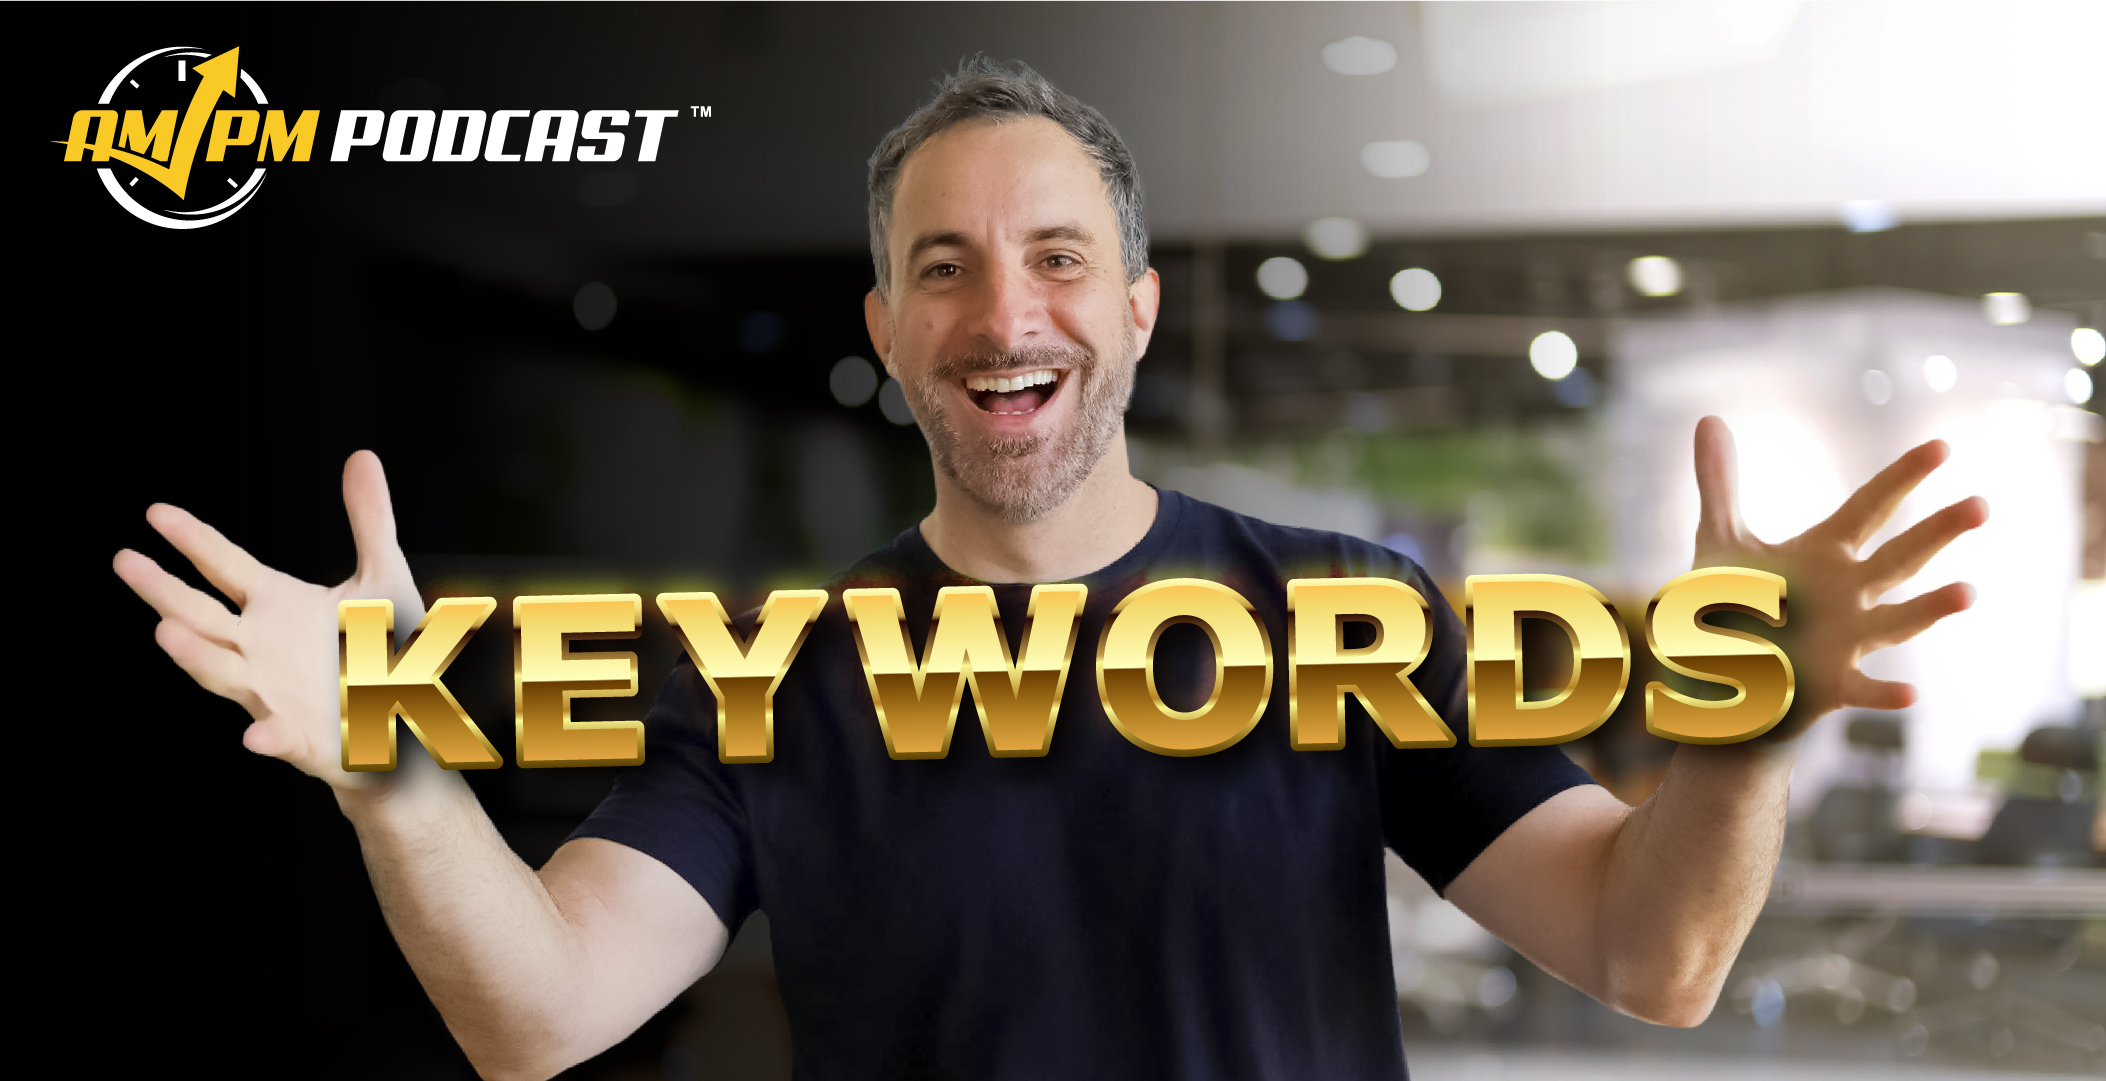 keyword research method, cerebro, ampm podcast, am pm podcast, ep 194